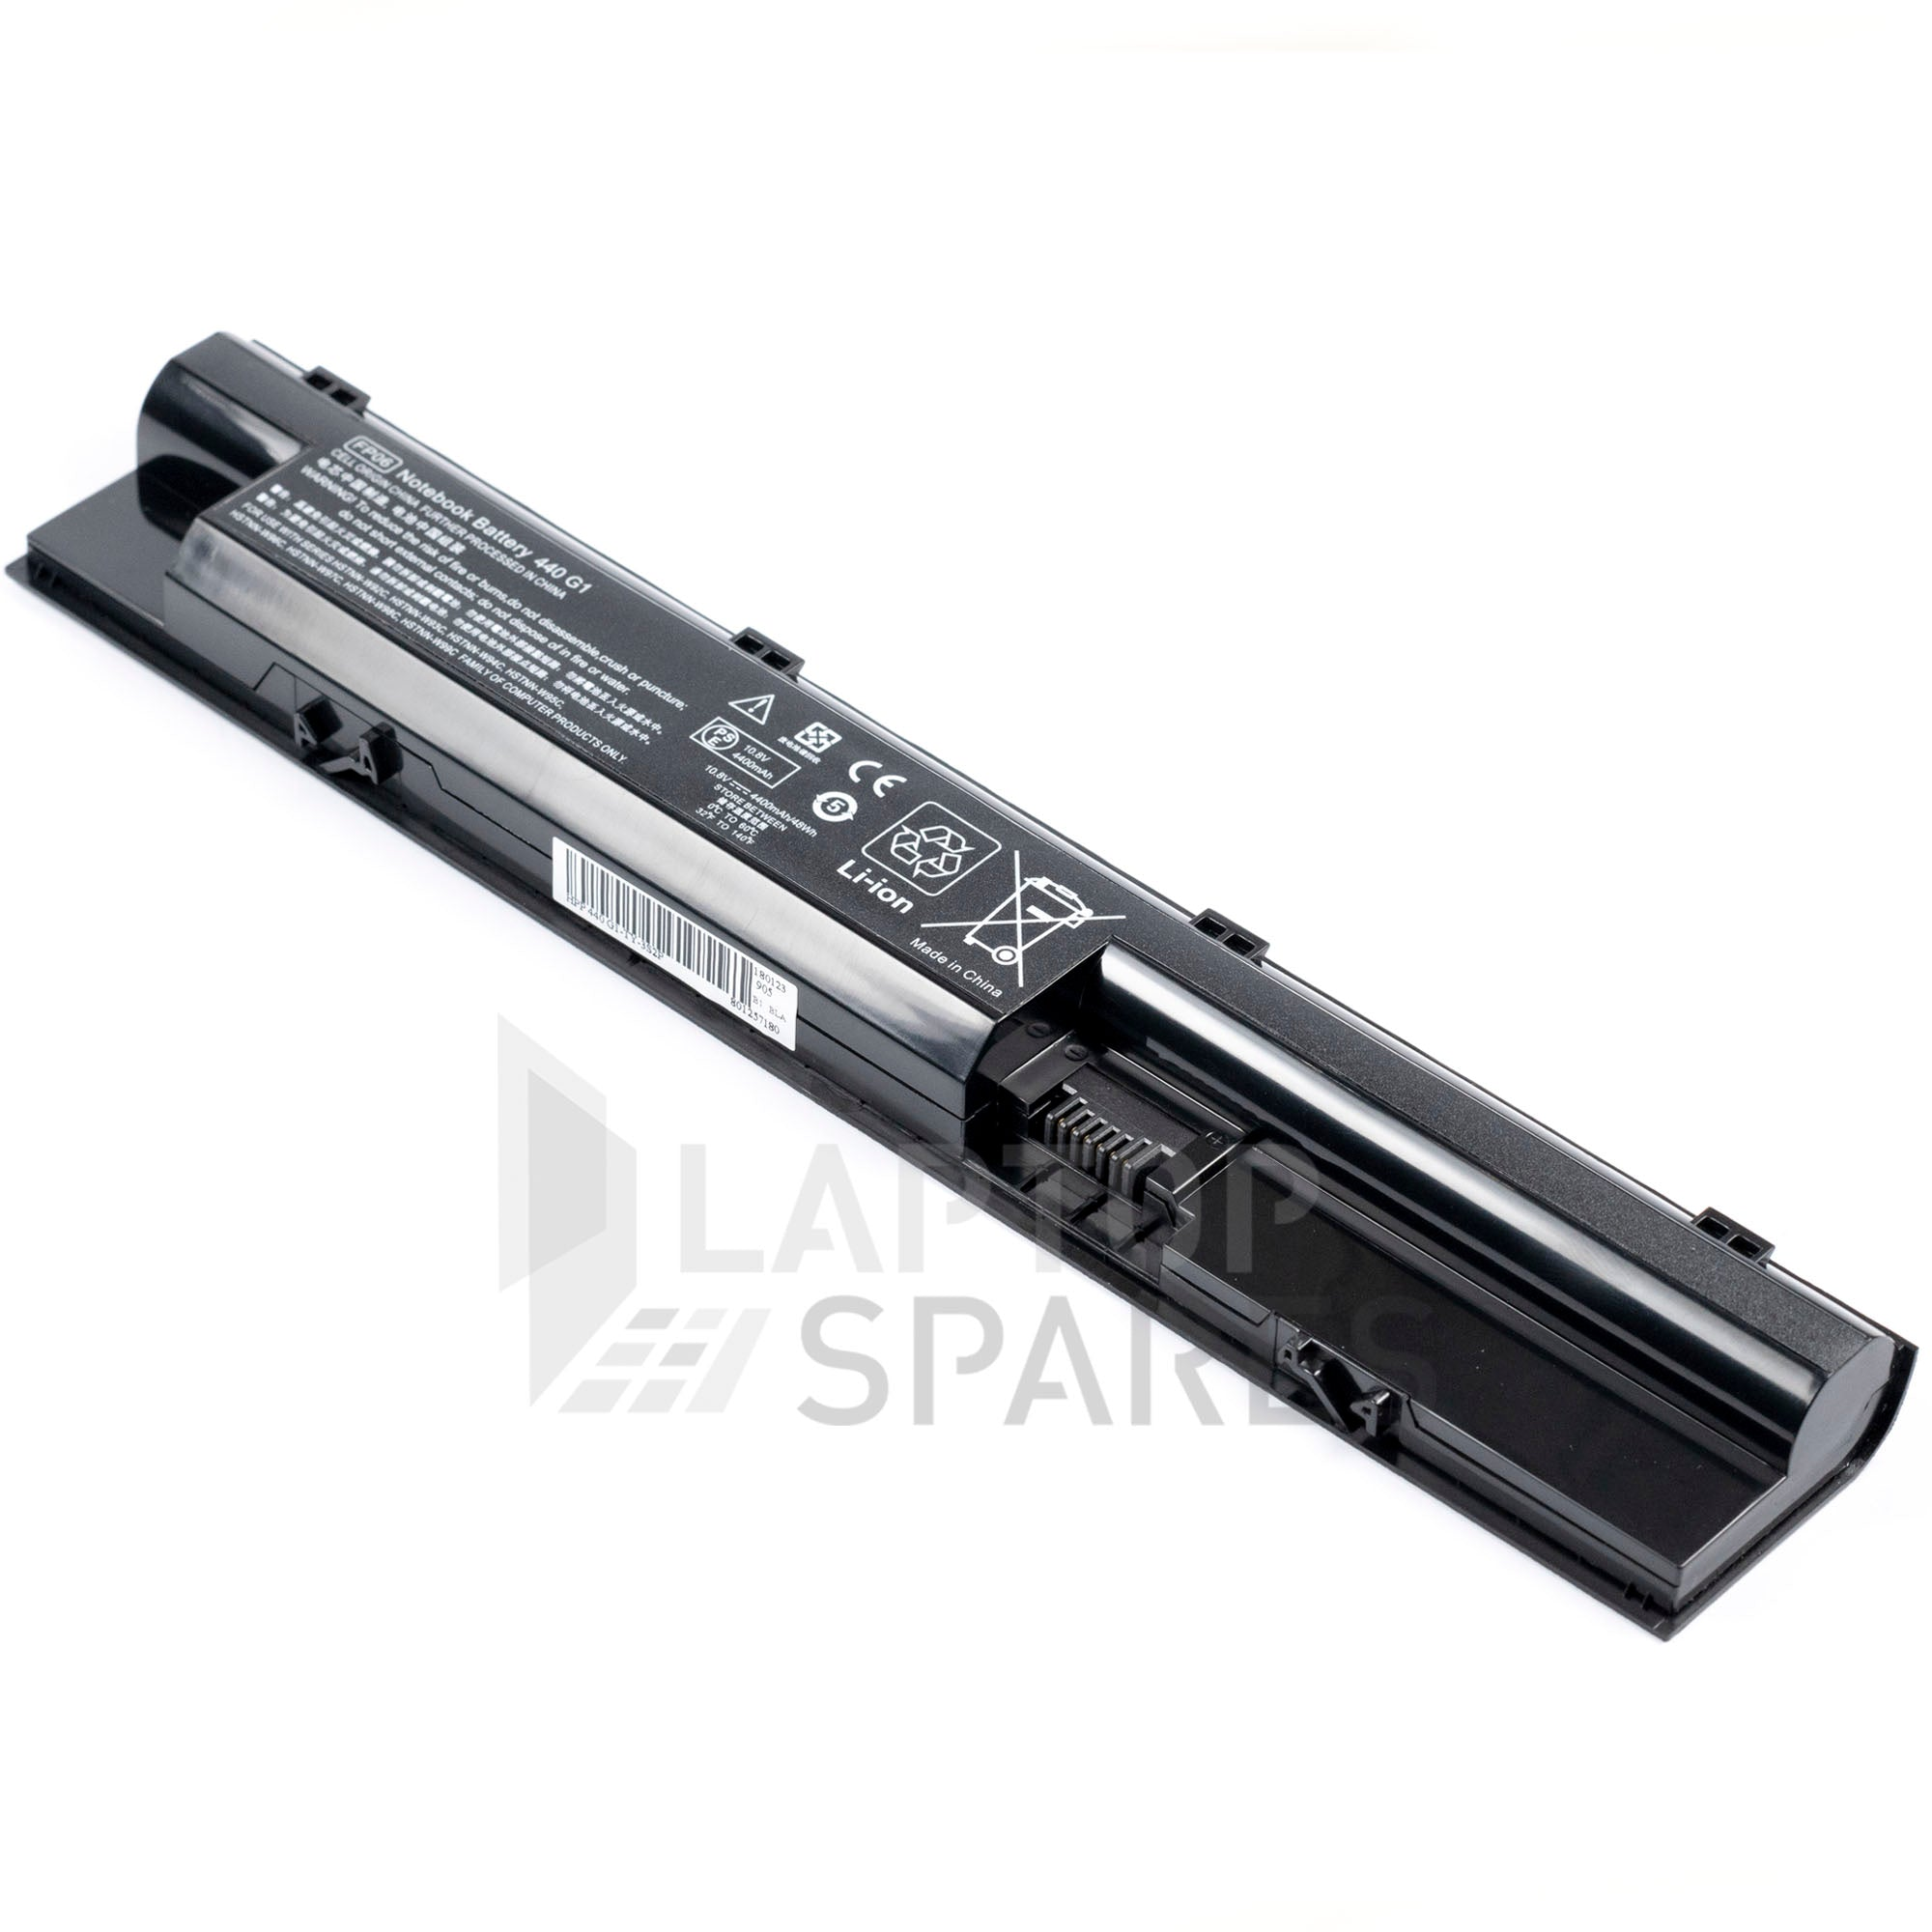 HP ProBook 440 G0 4400mAh 6 Cell Battery